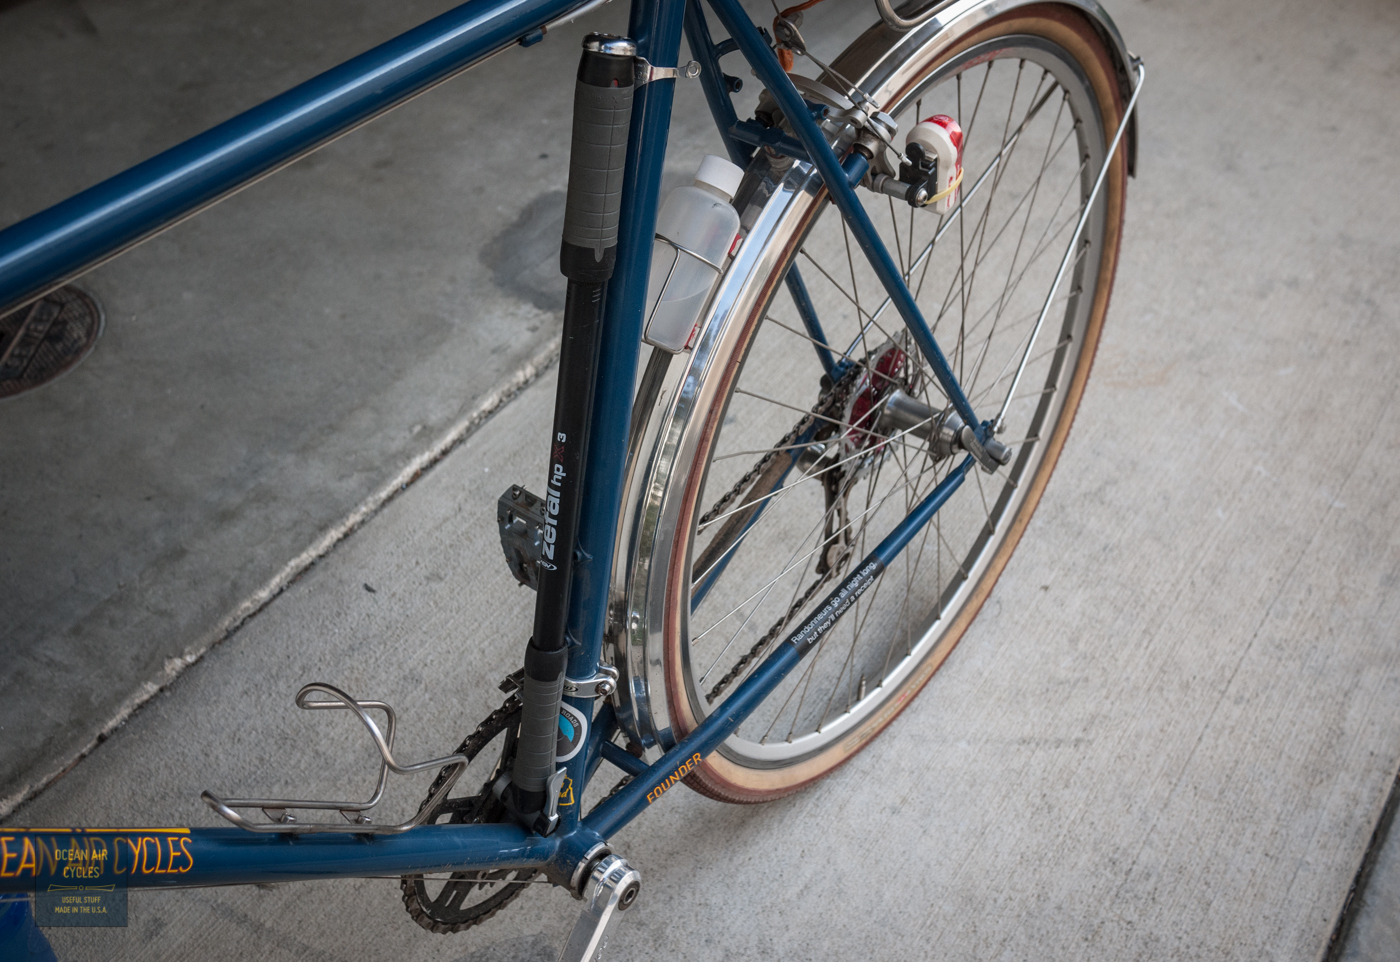 Attaching frame pump to top tube, or other pump options. - Bike Forums